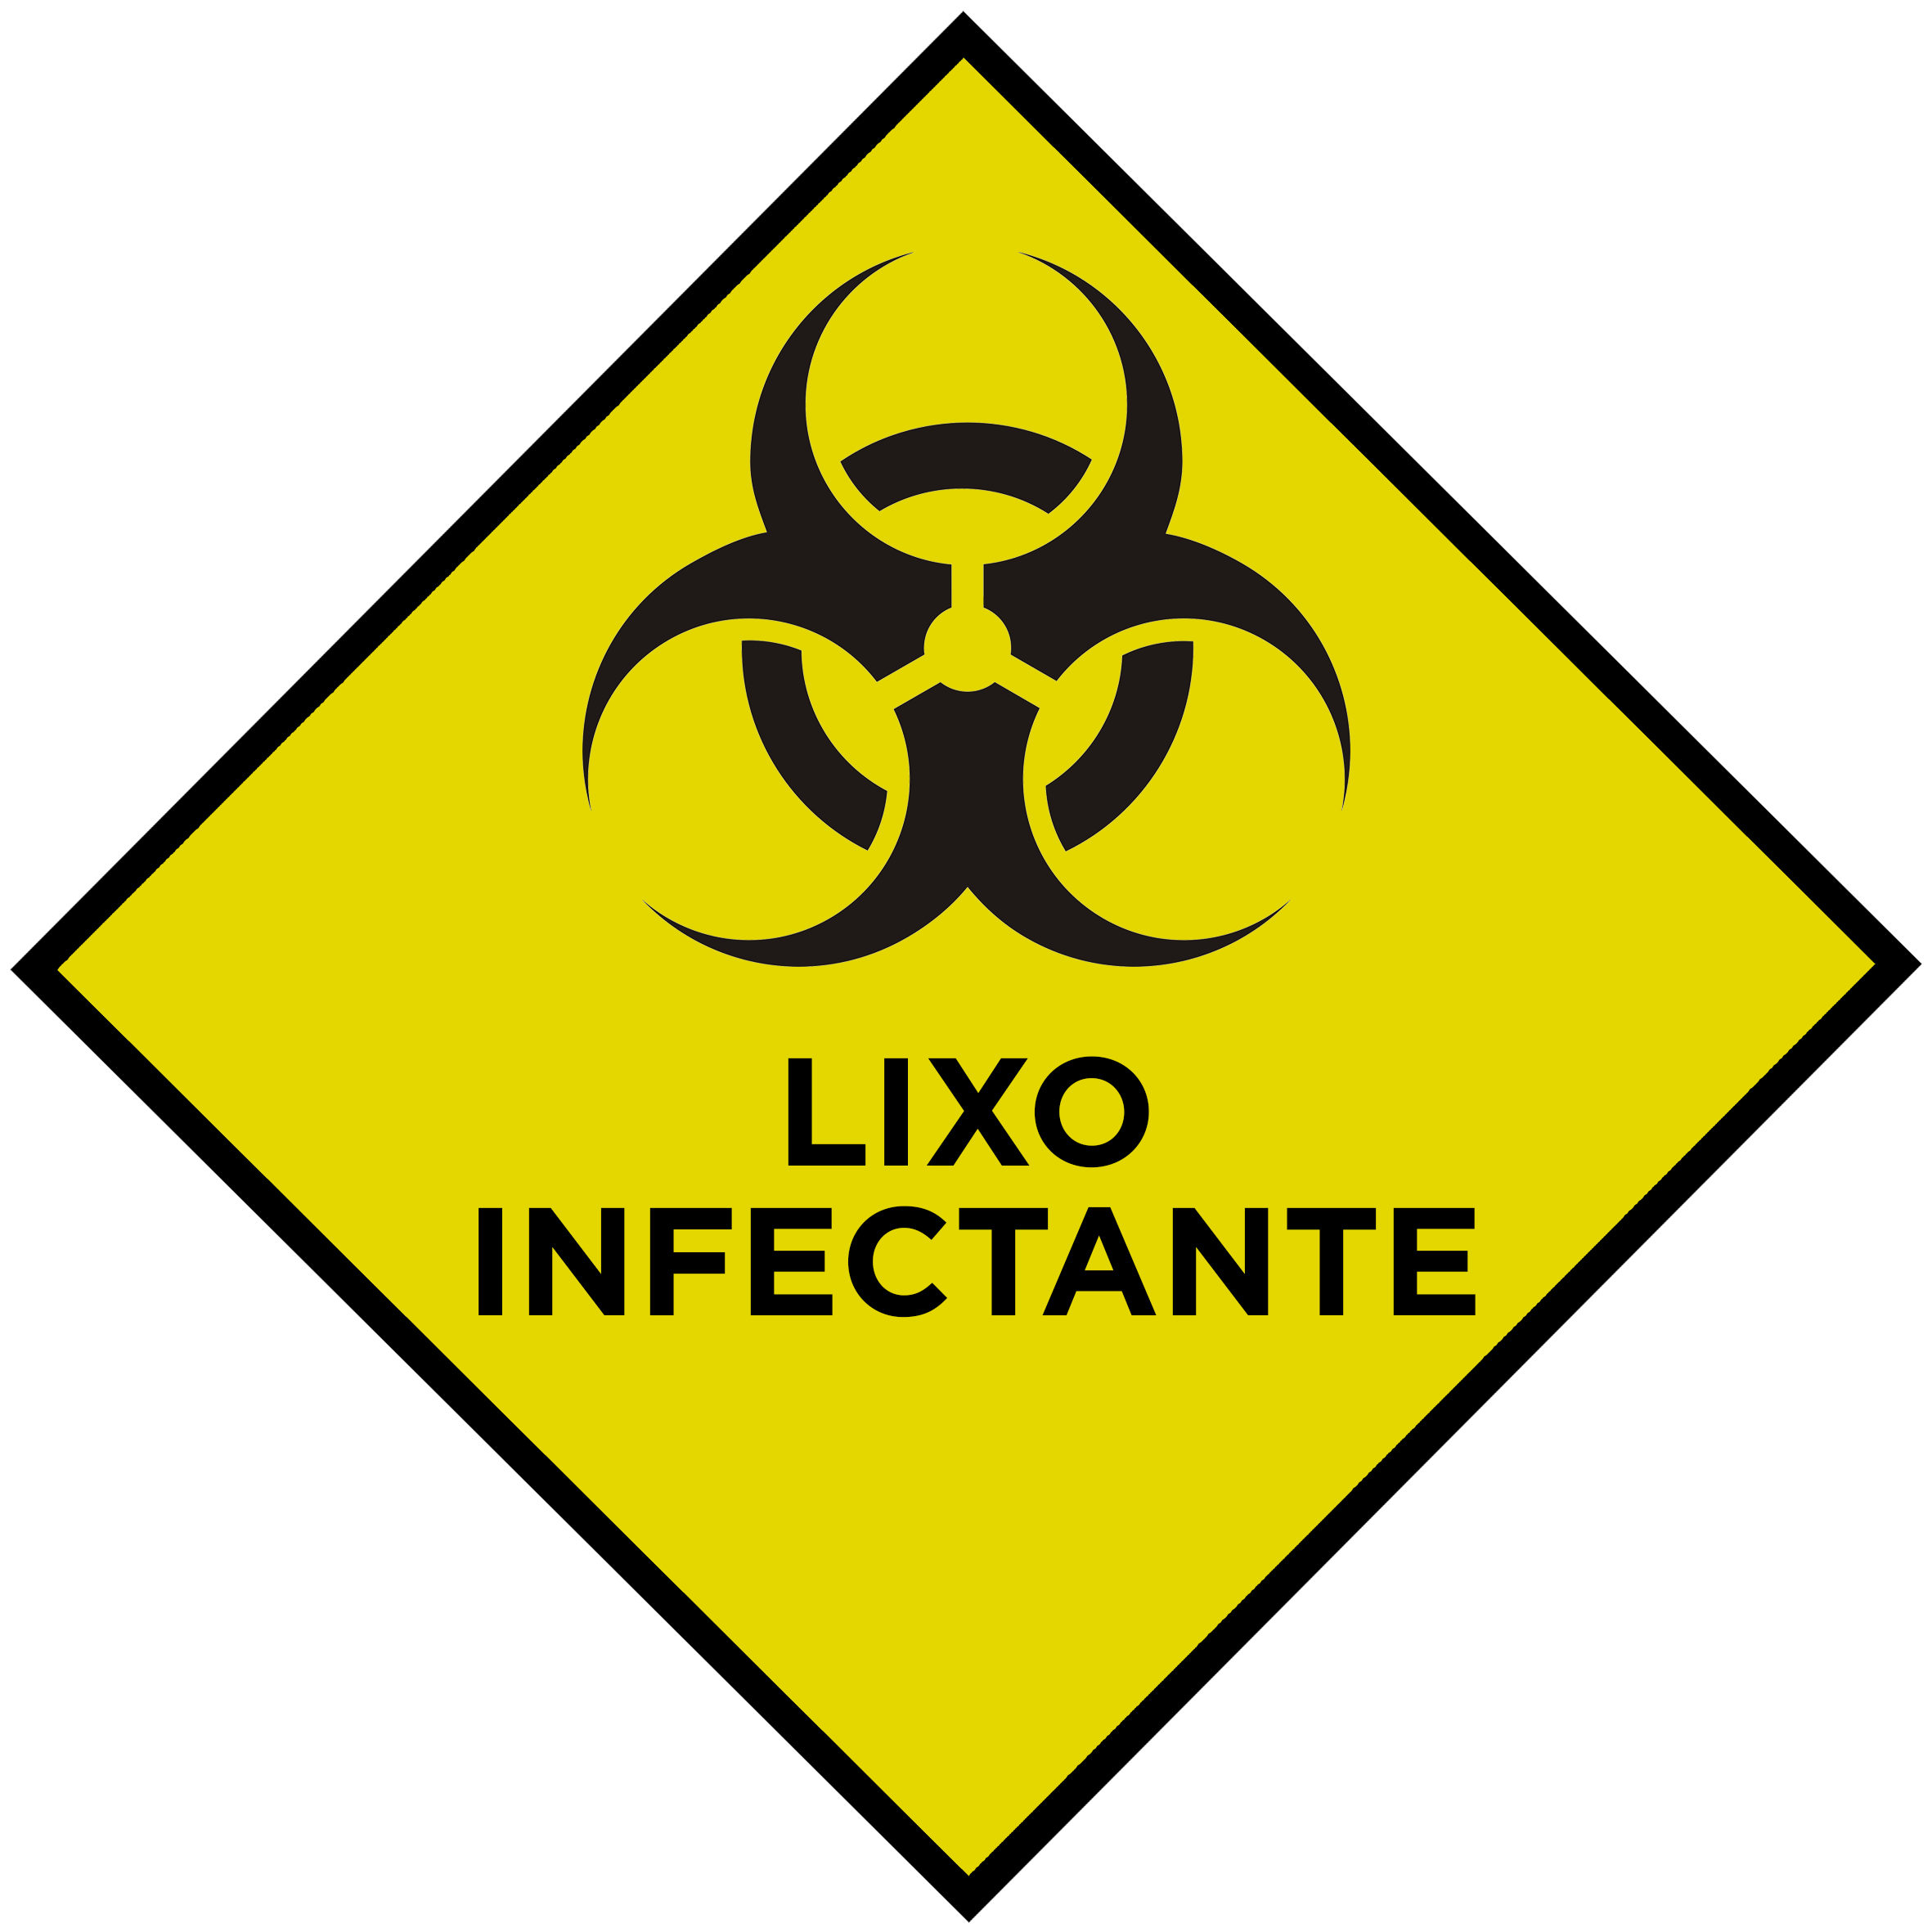 Lixo infectante